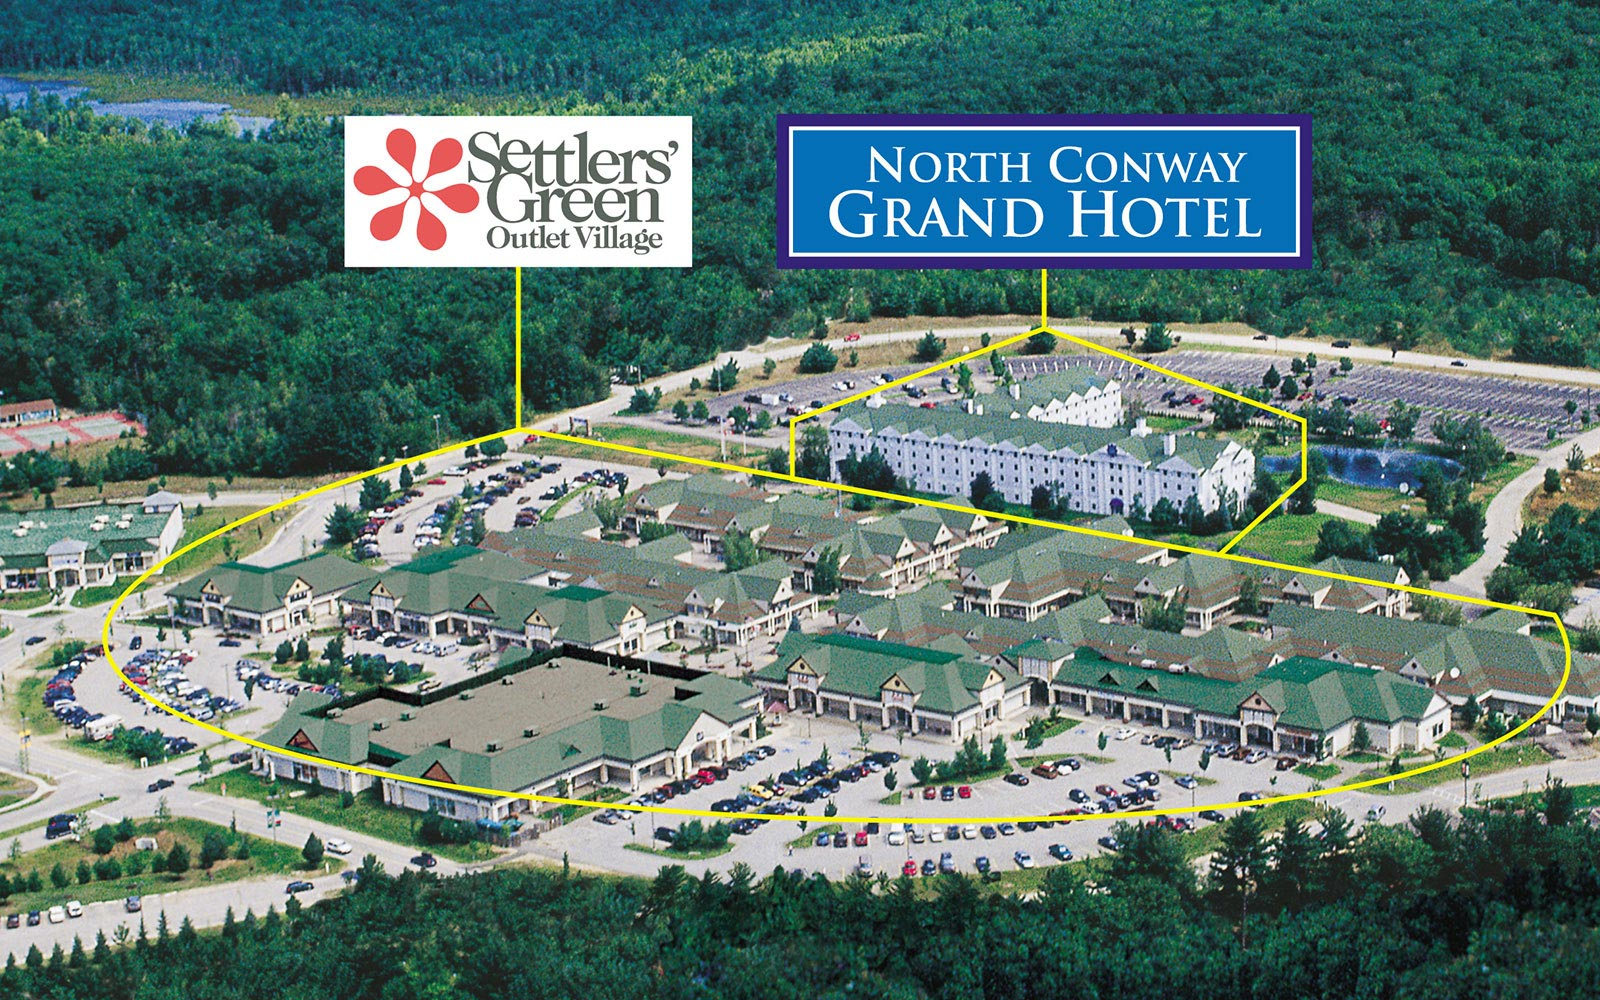 86242424c North Conway, New Hampshire Hotel - North Conway Grand Hotel